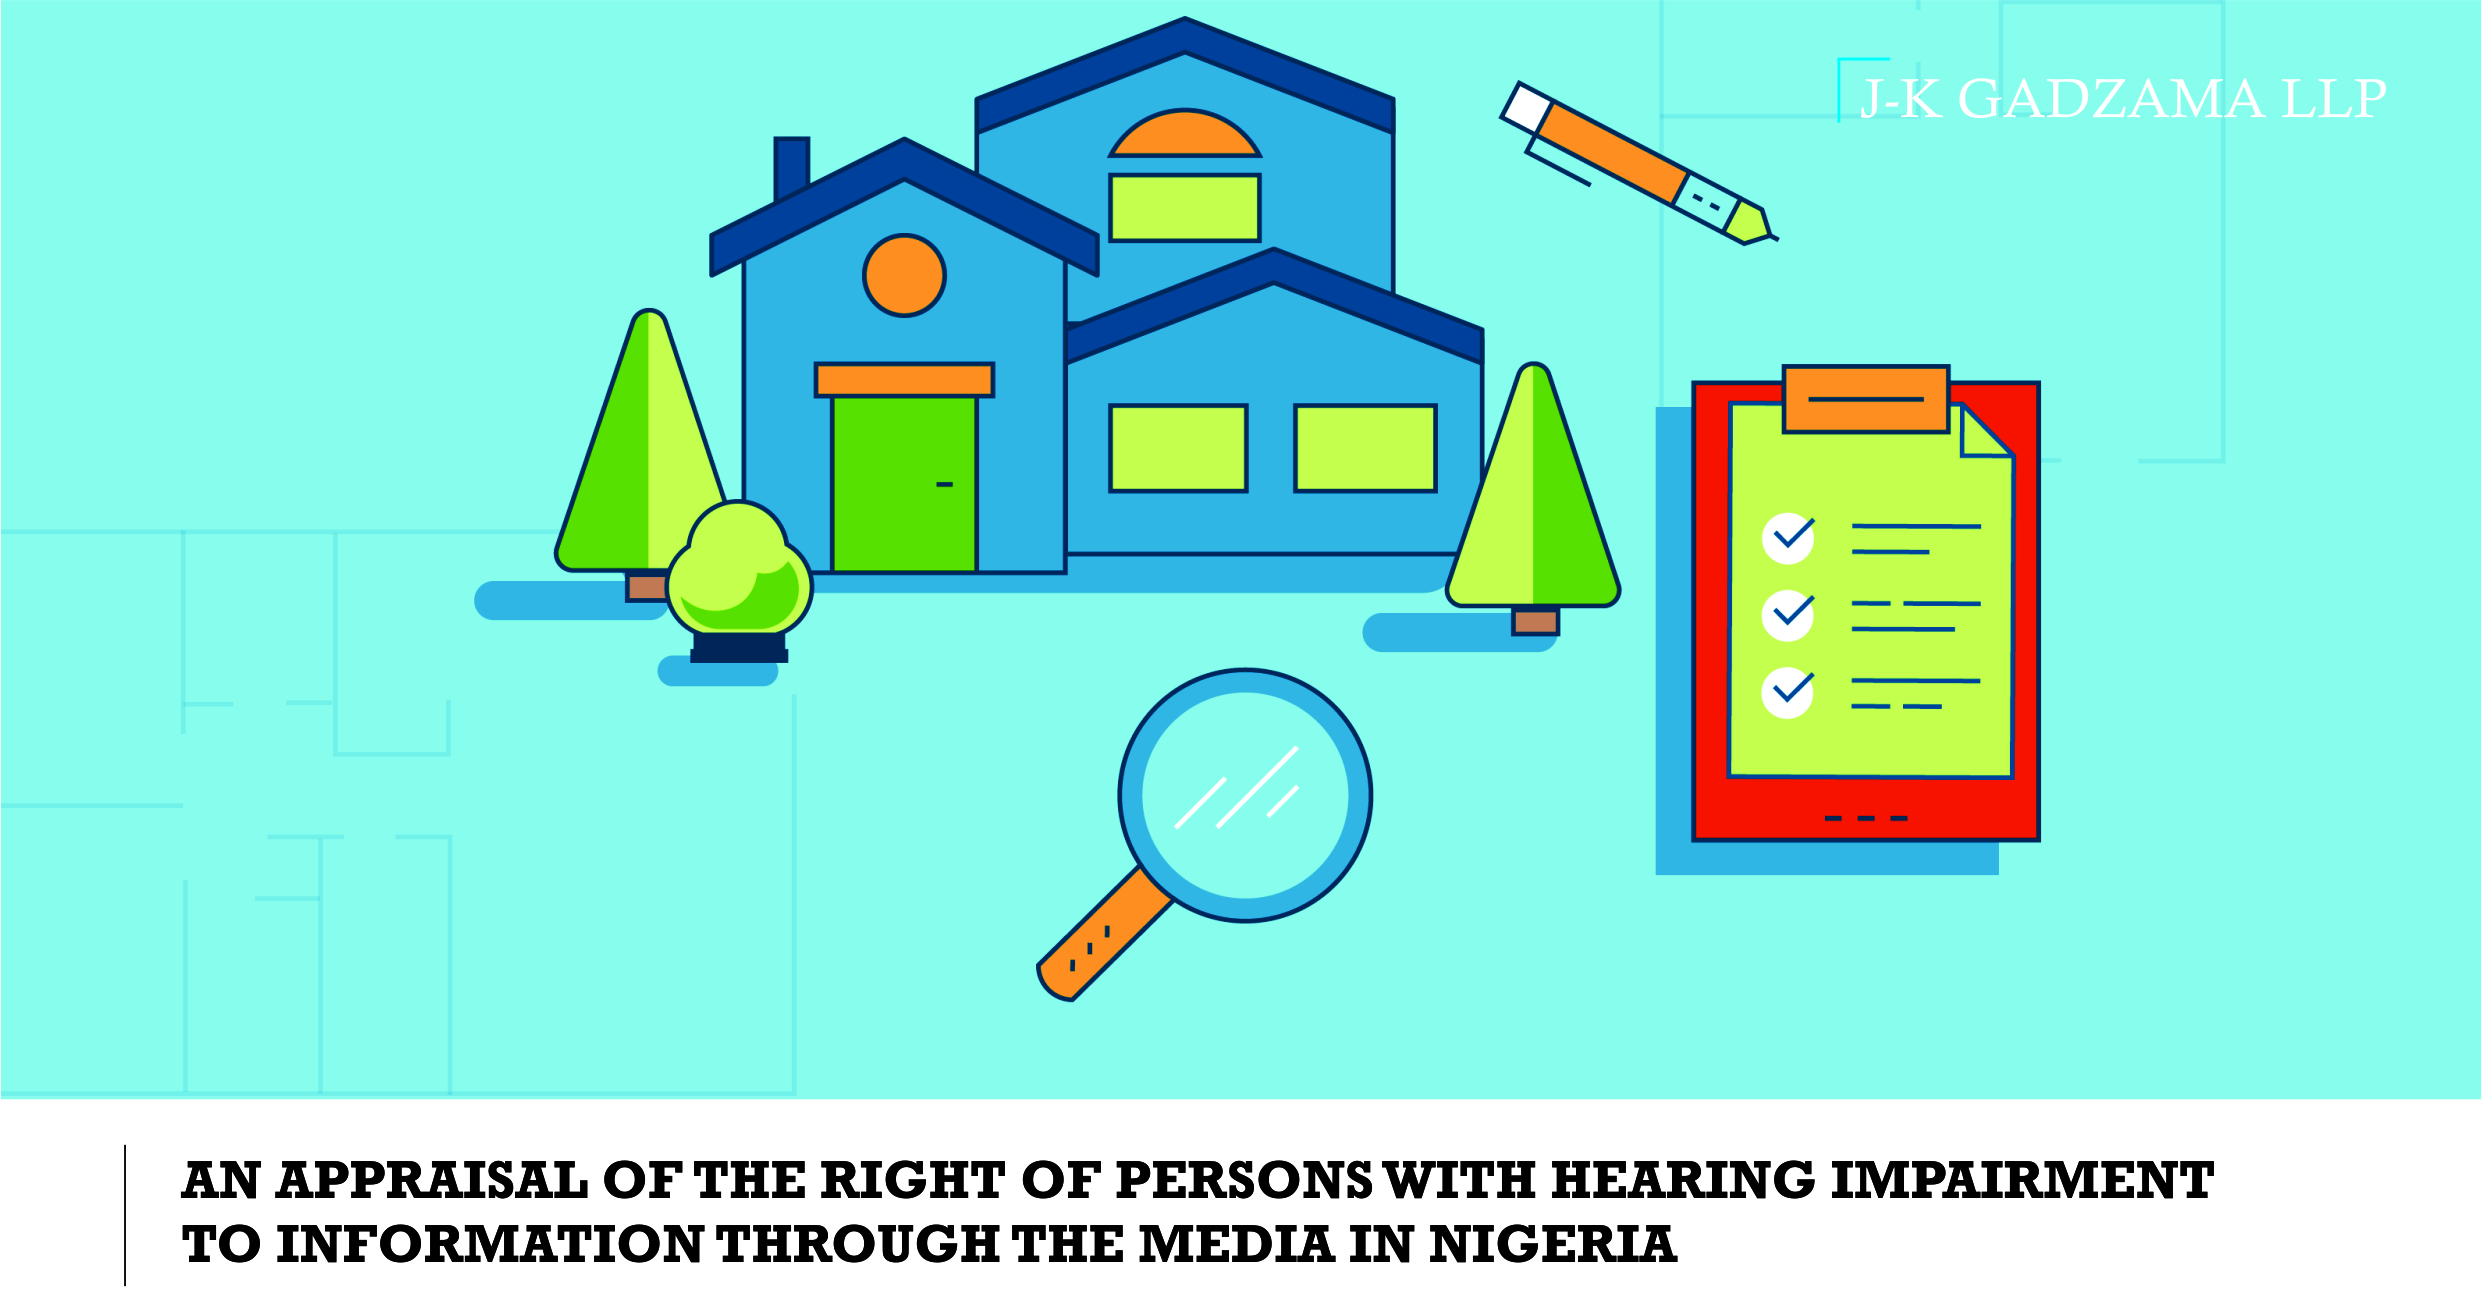 AN APPRAISAL OF THE RIGHT OF PERSONS WITH HEARING IMPAIRMENT TO INFORMATION THROUGH THE MEDIA IN NIGERIA